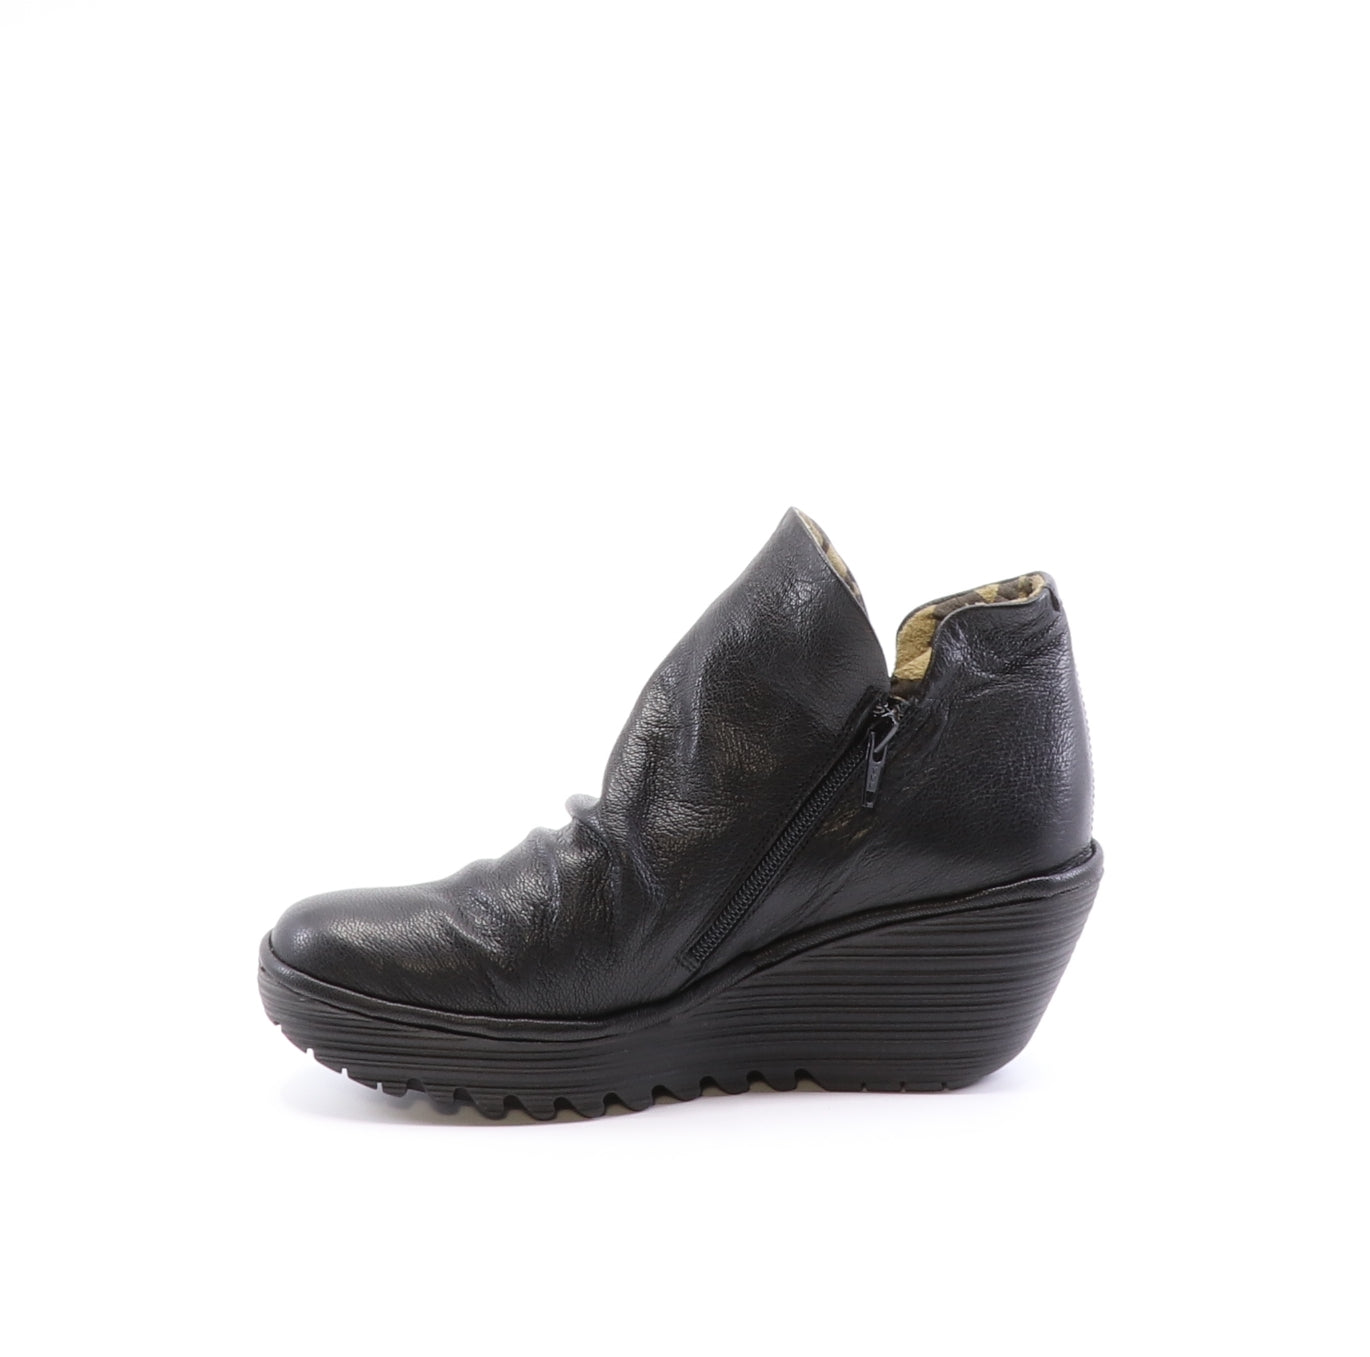 Fly London Yip black boot available at Shoe Muse